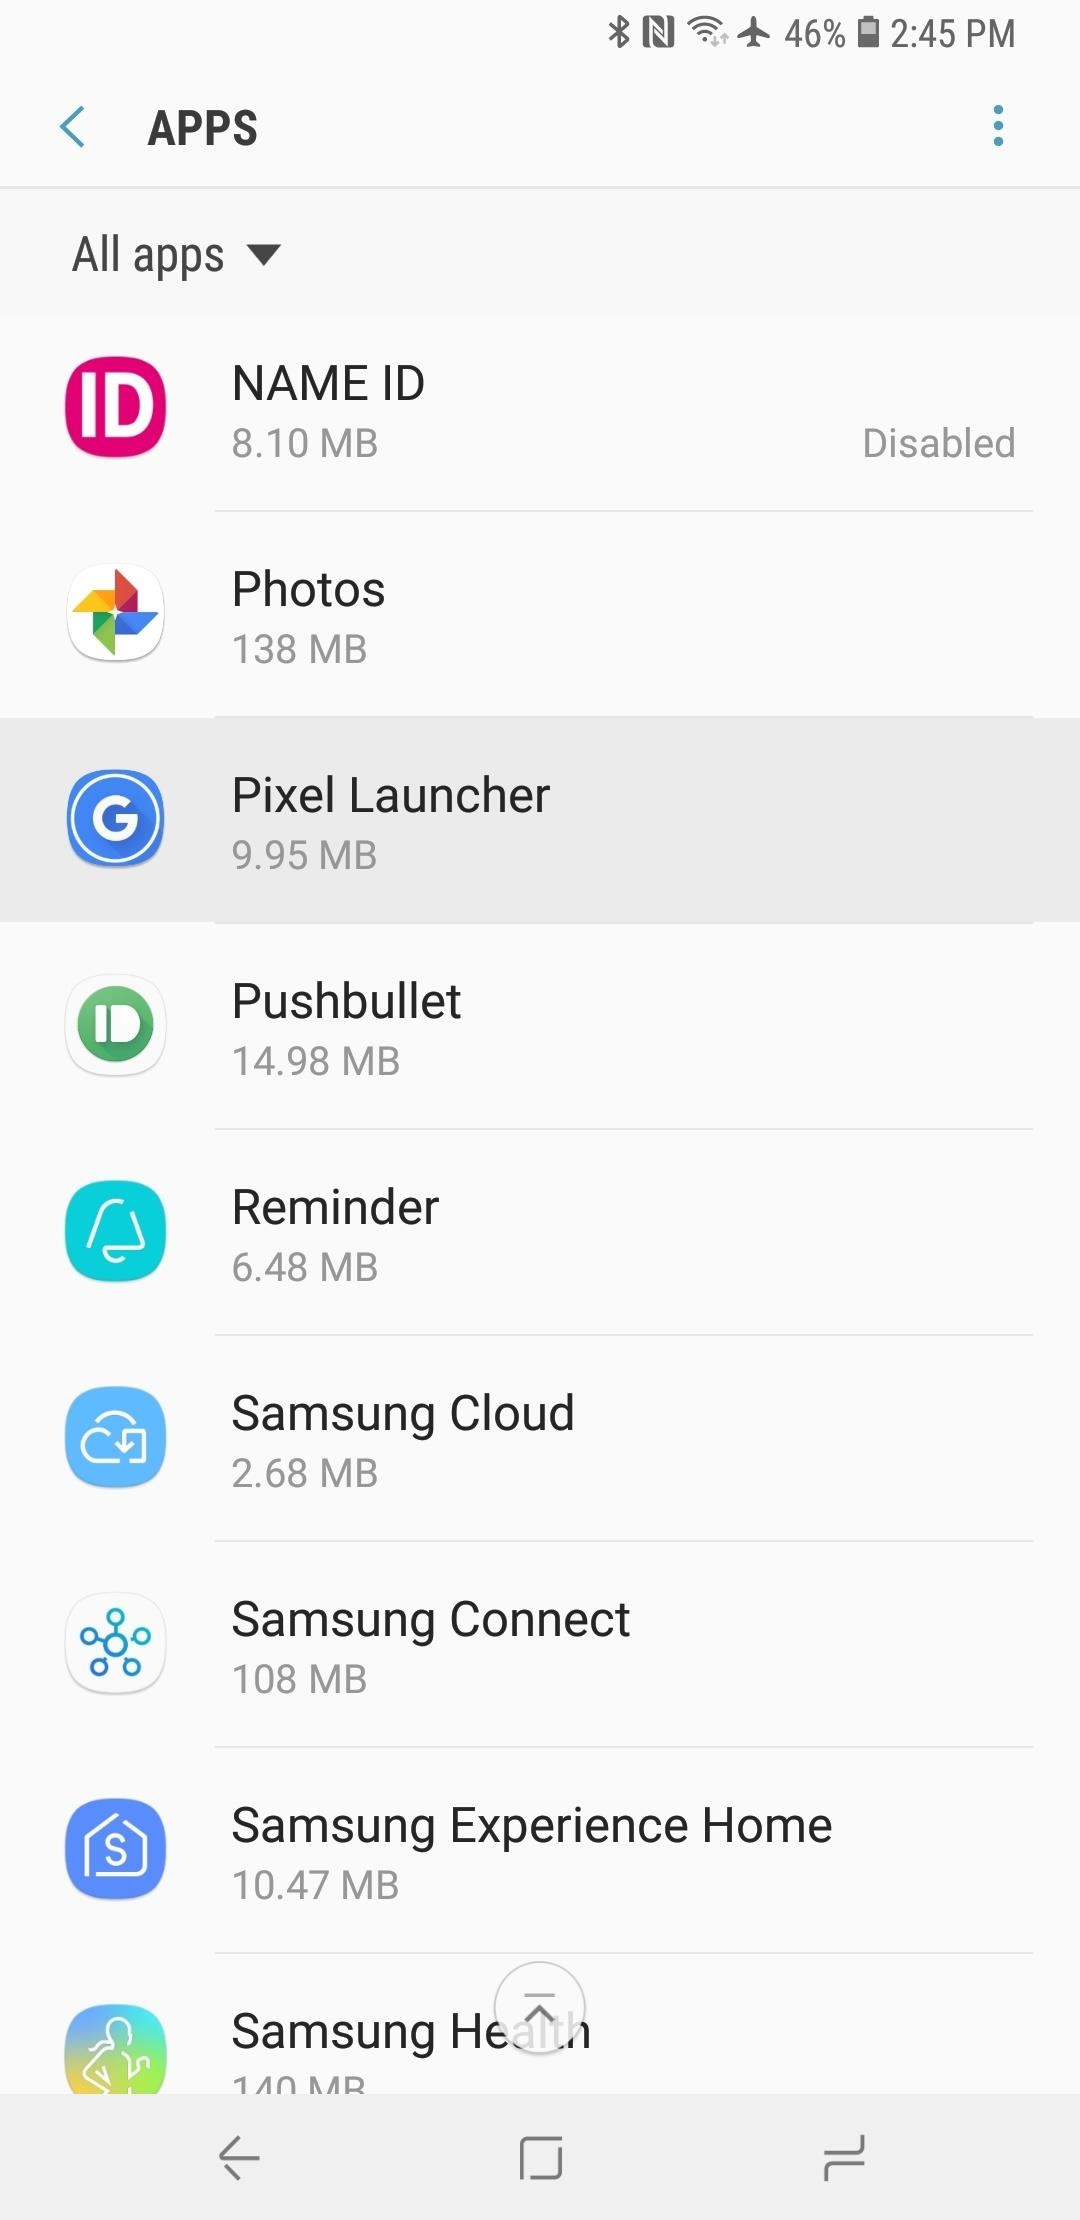 Enable-Android-9.0-P-Pixel-Launcher-Permissions-Mohamedovic-01